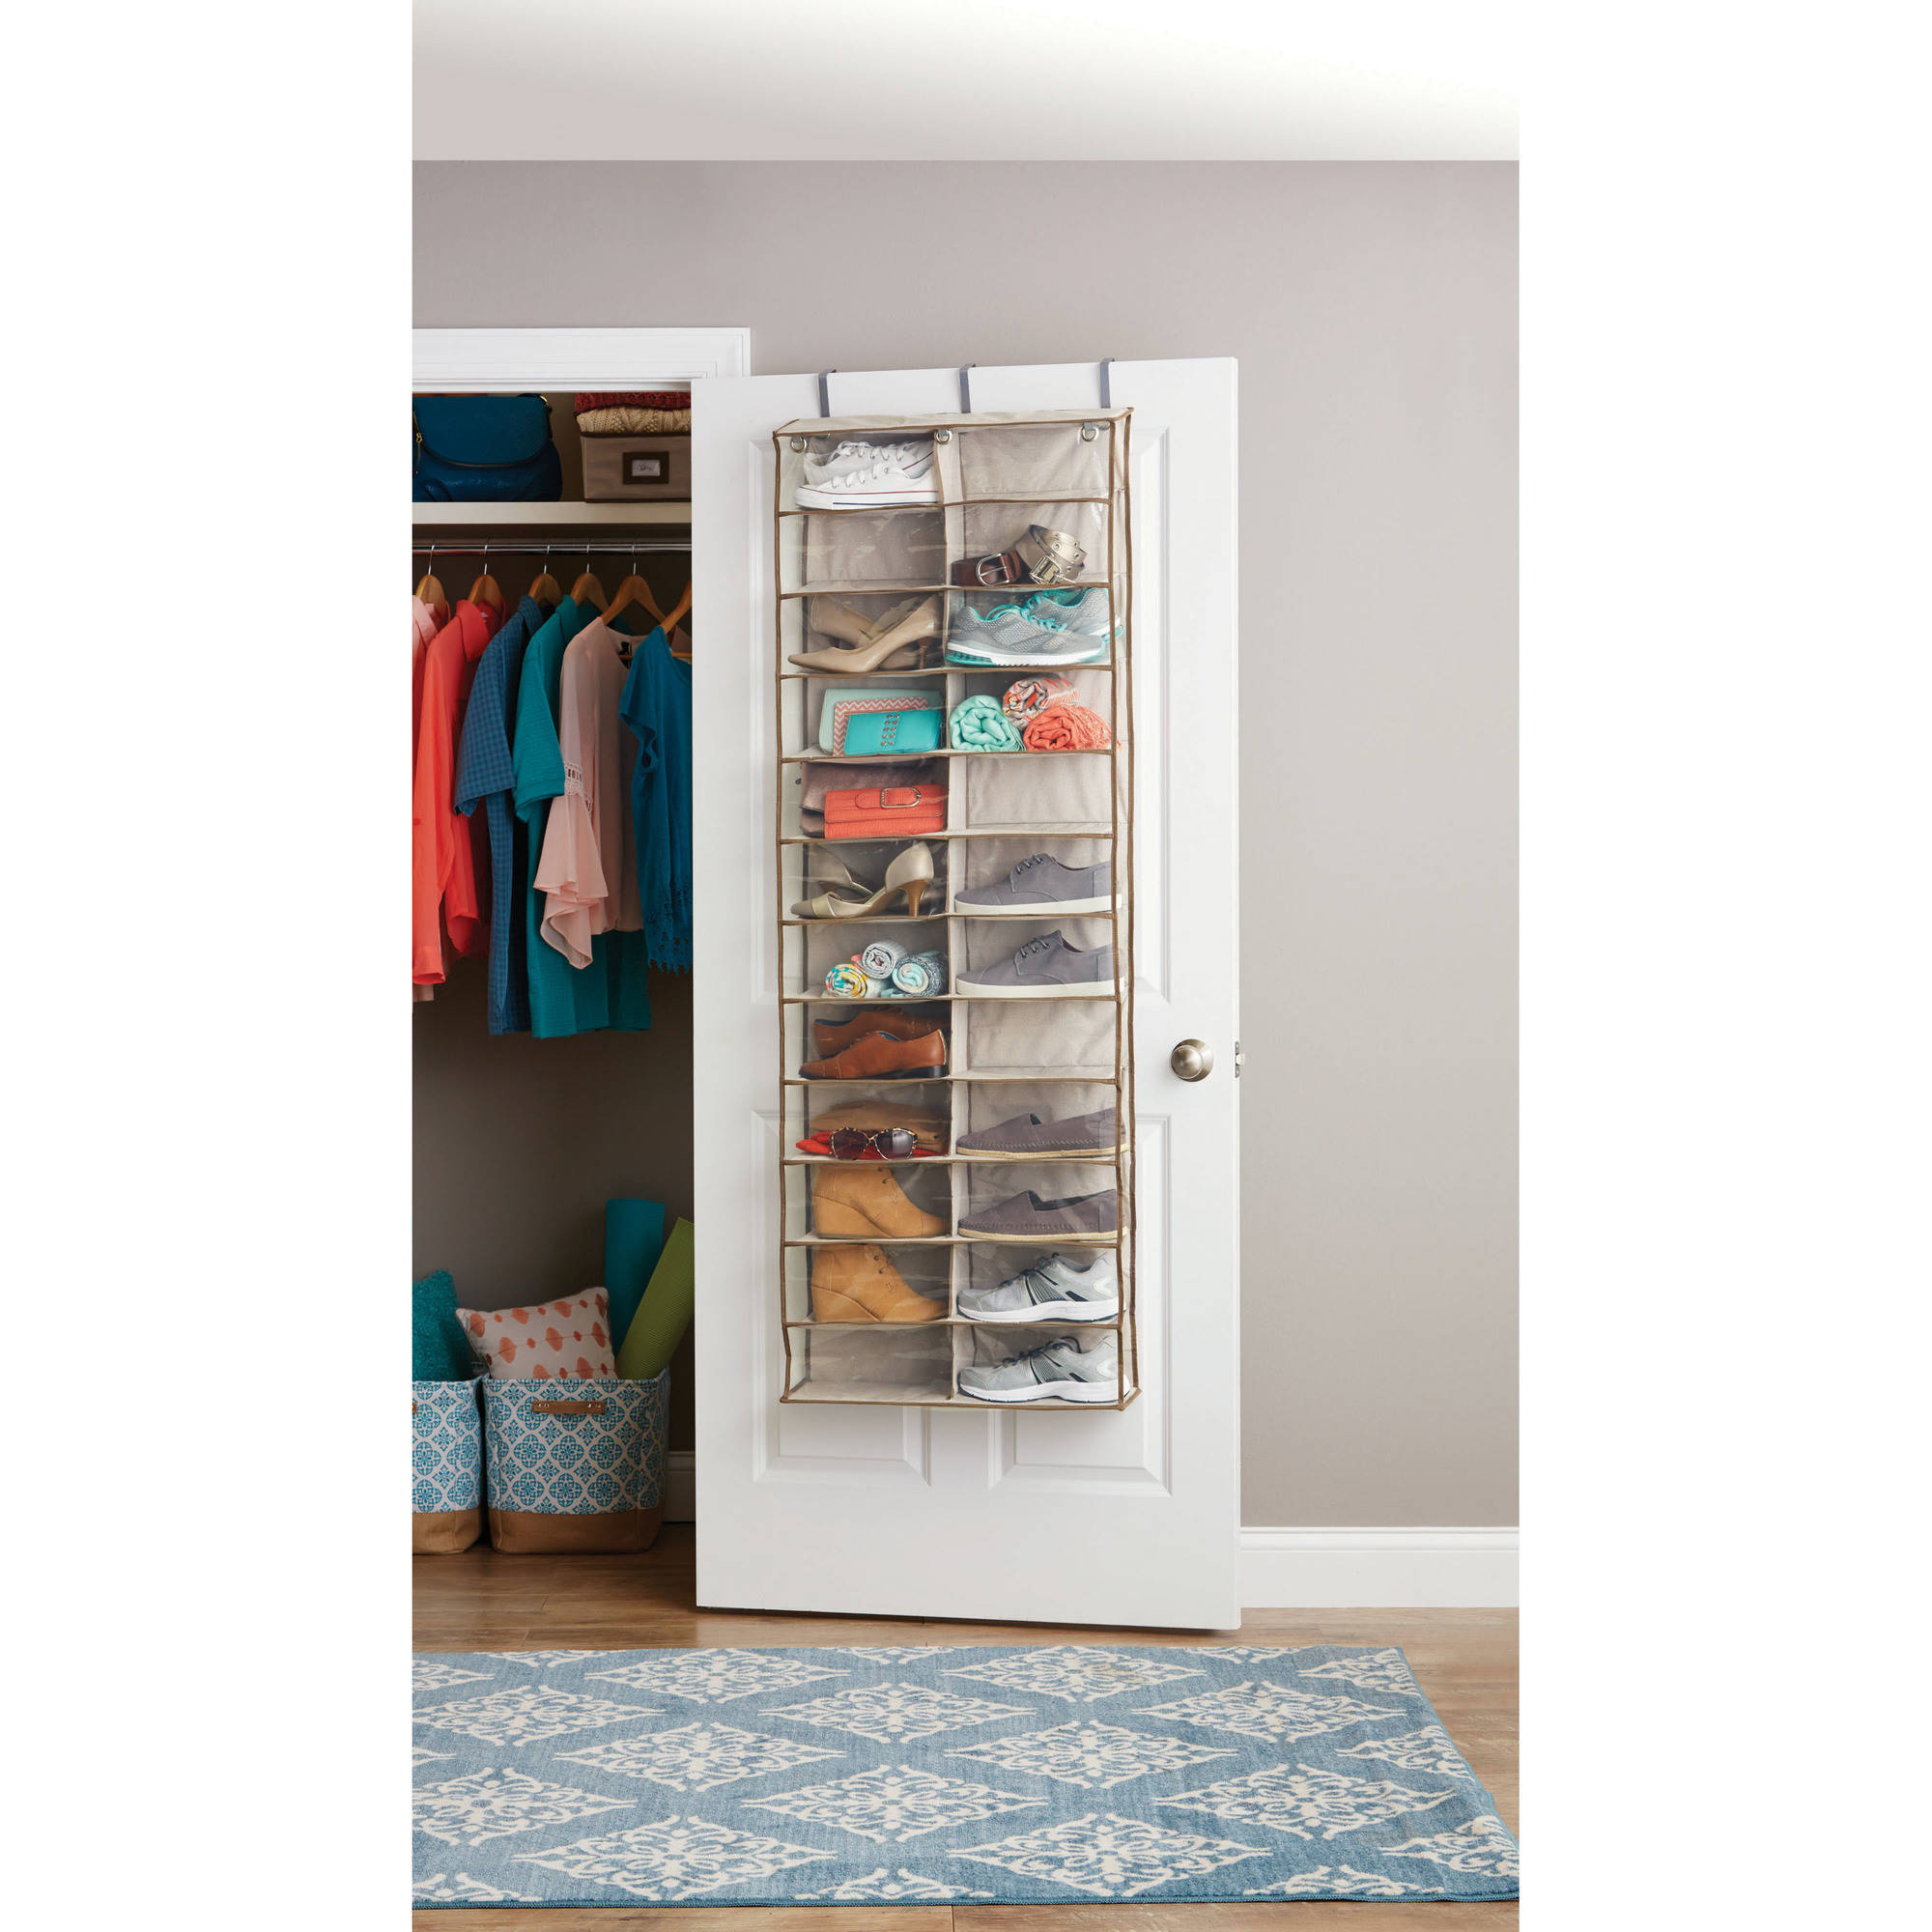 door organizers over the door pantry organizers sc 1 st ebay. Black Bedroom Furniture Sets. Home Design Ideas